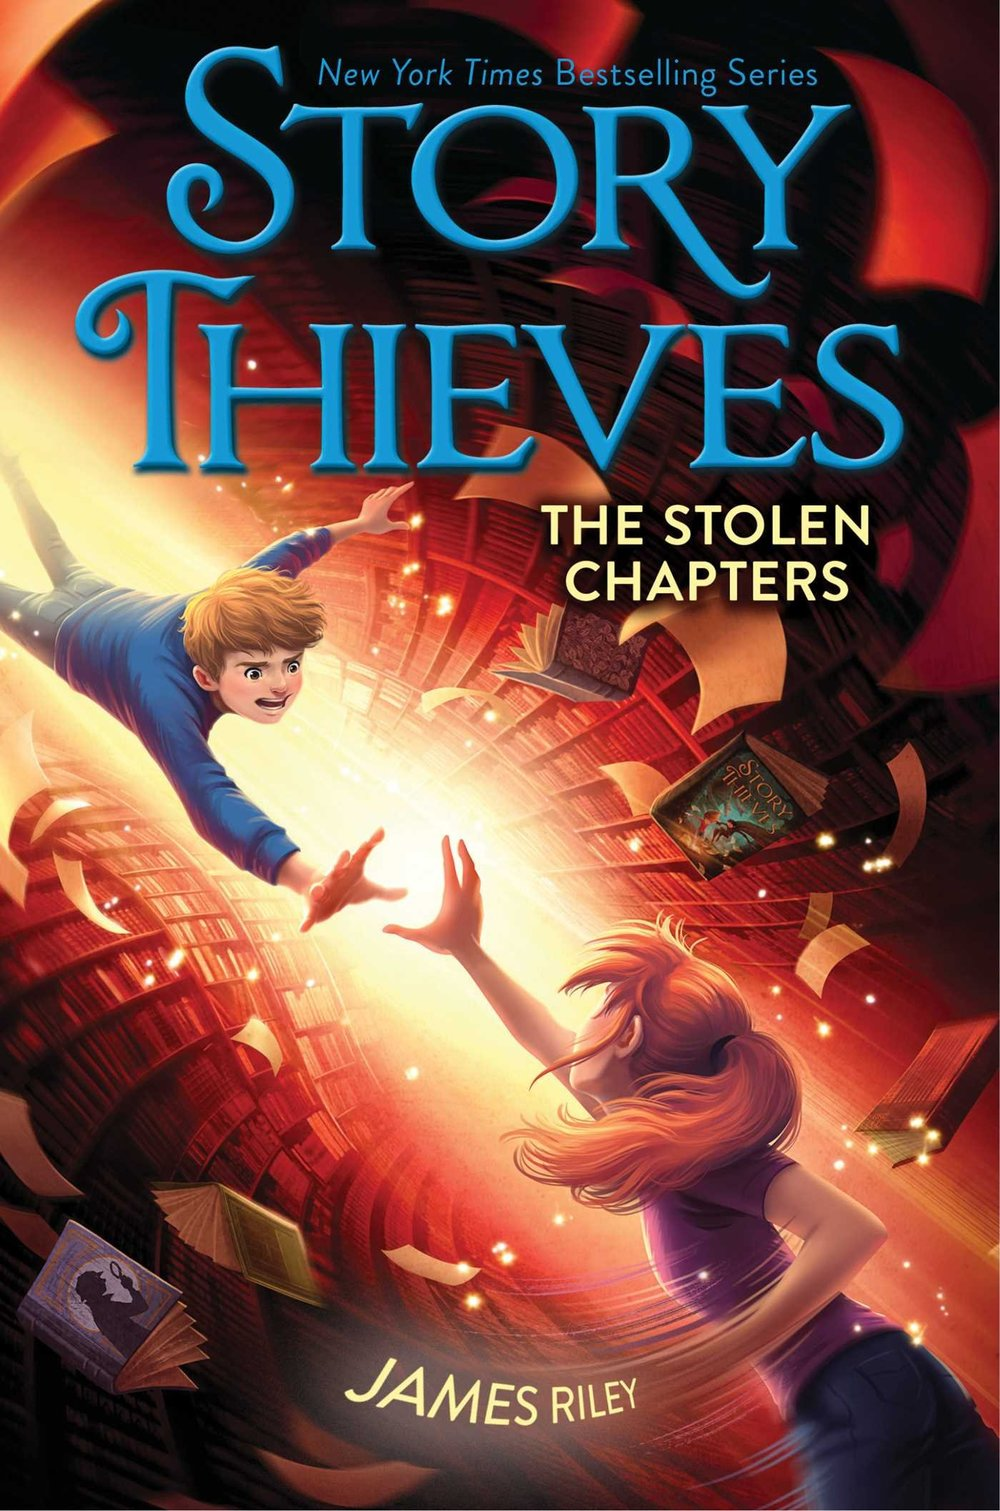 "STORY THIEVES: THE STOLEN CHAPTERS (BOOK 2) - Owen, Kiel, and Bethany confront secrets, stolen memories, and some very familiar faces in the second book in the New York Times bestselling series, Story Thieves—which was called a ""fast-paced, action-packed tale"" by School Library Journal—from the author of the Half Upon a Time trilogy.Owen Conners's whole life changed the day he found out his classmate Bethany was half-fictional, and could take him into any book in the library. Which story would they jump into next? Another fantasy, like the Kiel Gnomenfoot, Magic Thief books? Maybe something with superheroes? Owen's up for anything except mysteries—those just have too many hidden clues, twists that make no sense, and an ending you never see coming.Then Owen wakes up in a real-life mystery with a memory that's been erased and too many questions. How did Kiel Gnomenfoot lose all of his magic? Where is Bethany? And who's the annoying guy wearing the question mark mask and Sherlock Holmes hat, taunting Owen and Kiel that Bethany is in grave danger?Bethany is trapped in a hidden room that's slowly filling with water, and she can't escape until her friends find her. But is she imprisoned by more than just chains and a locked door? What's she hiding from Owen and Kiel?Maybe some mysteries just shouldn't be solved…BUY: AMAZON 